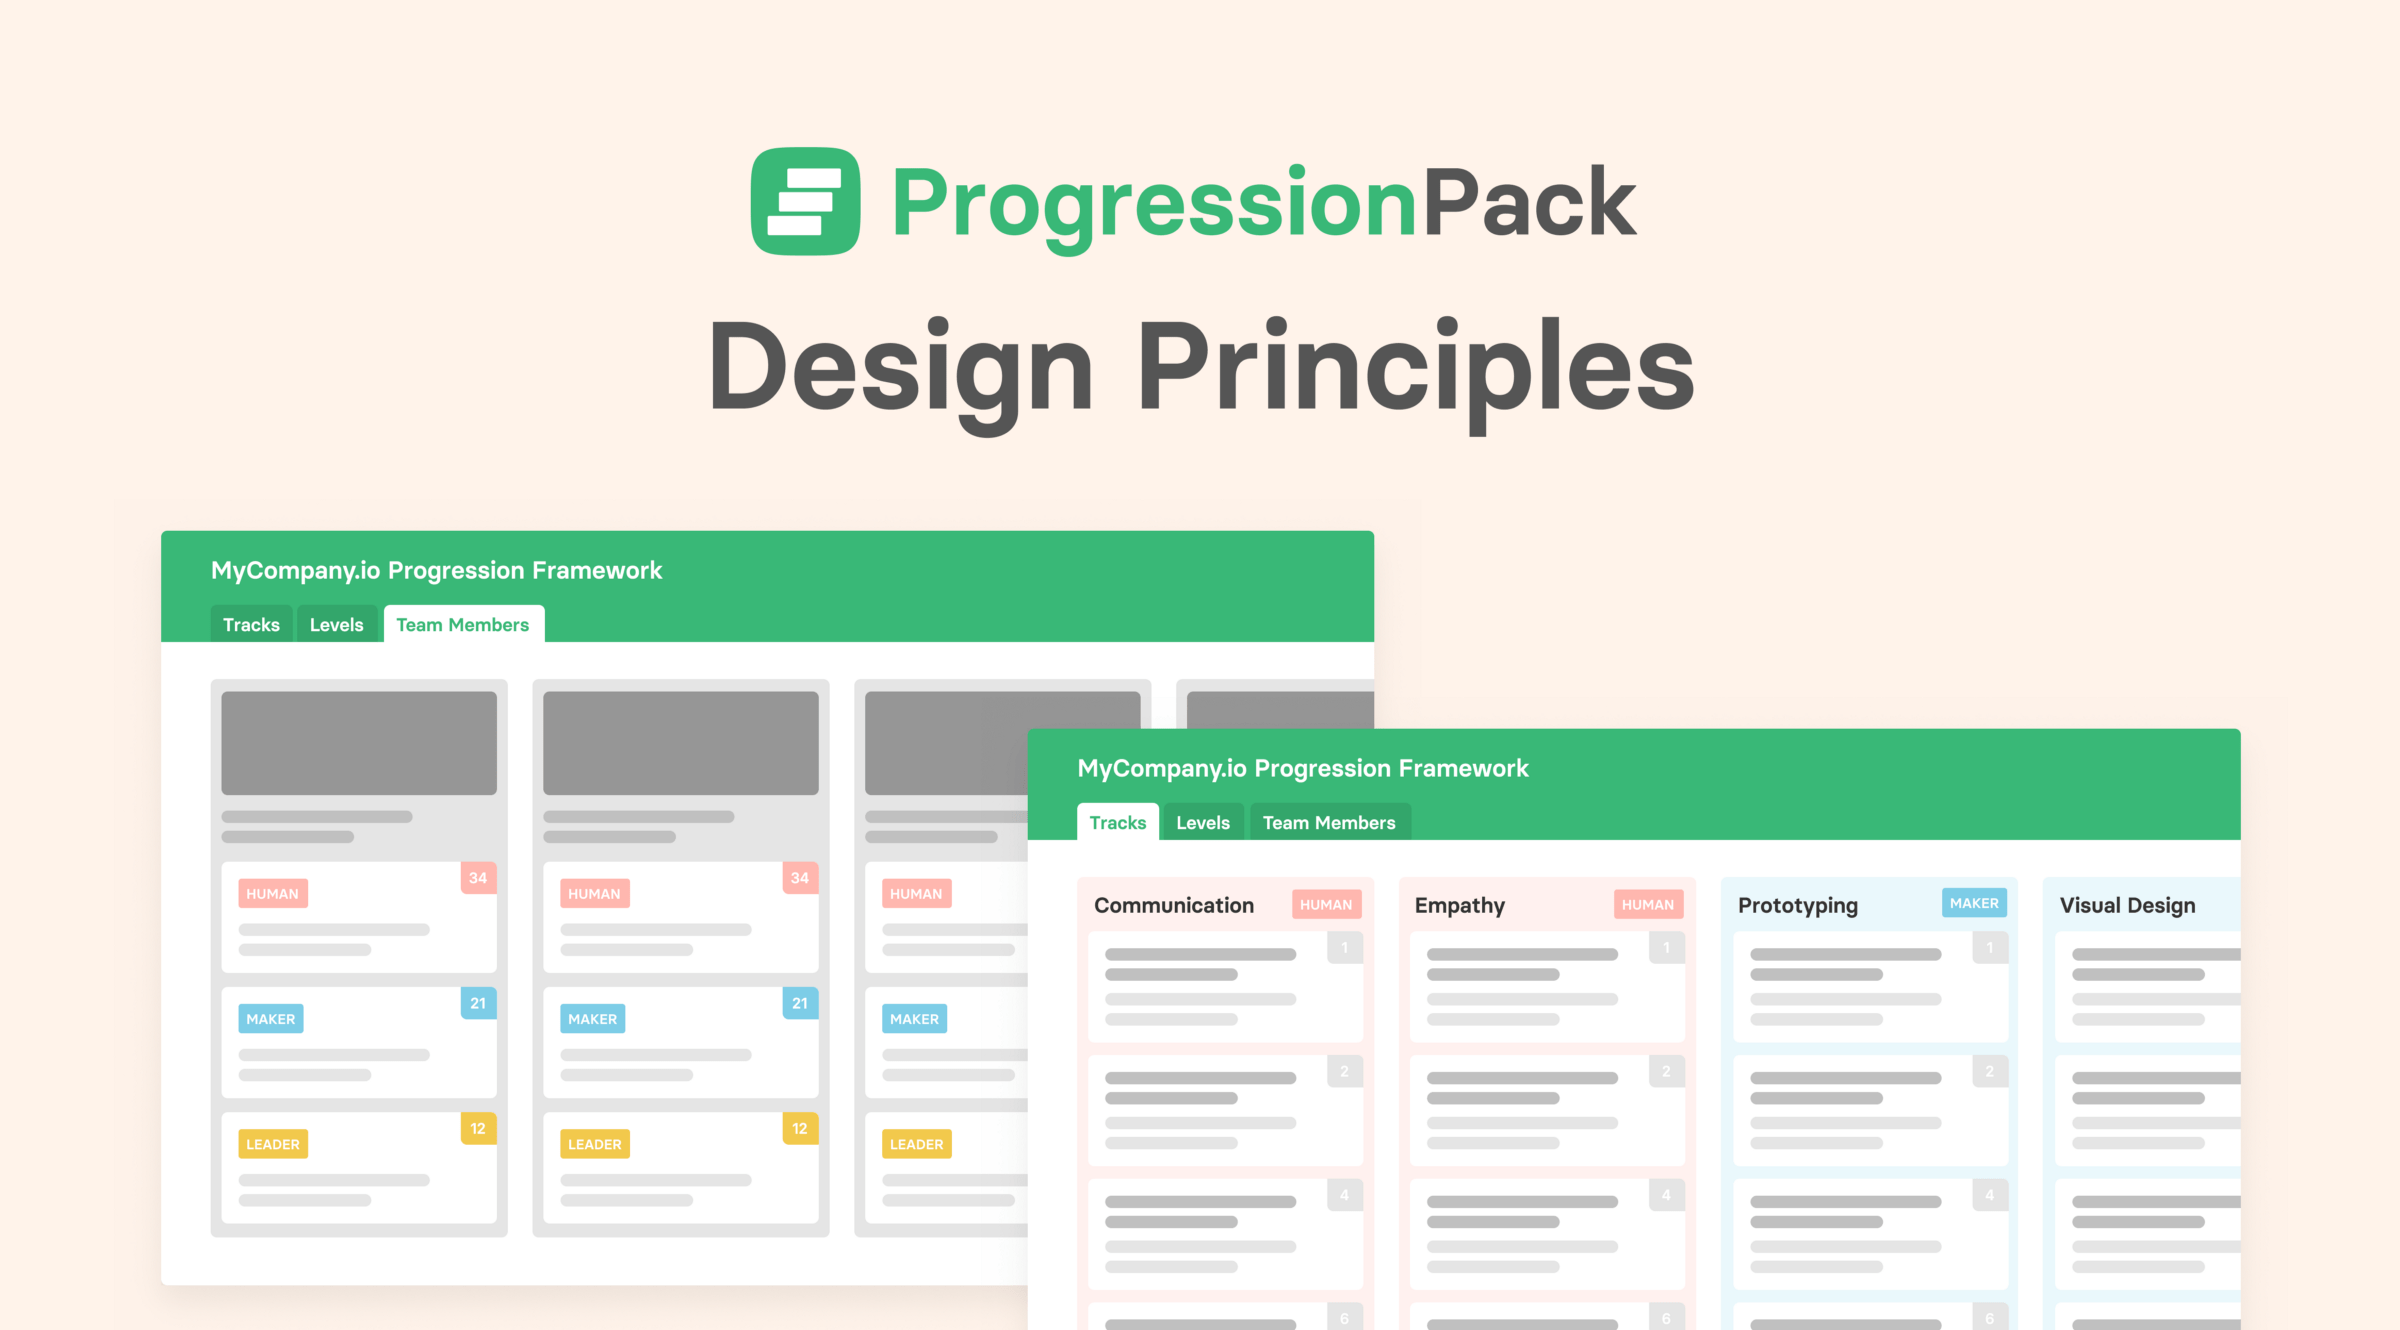 Building Progression: The importance of design principles